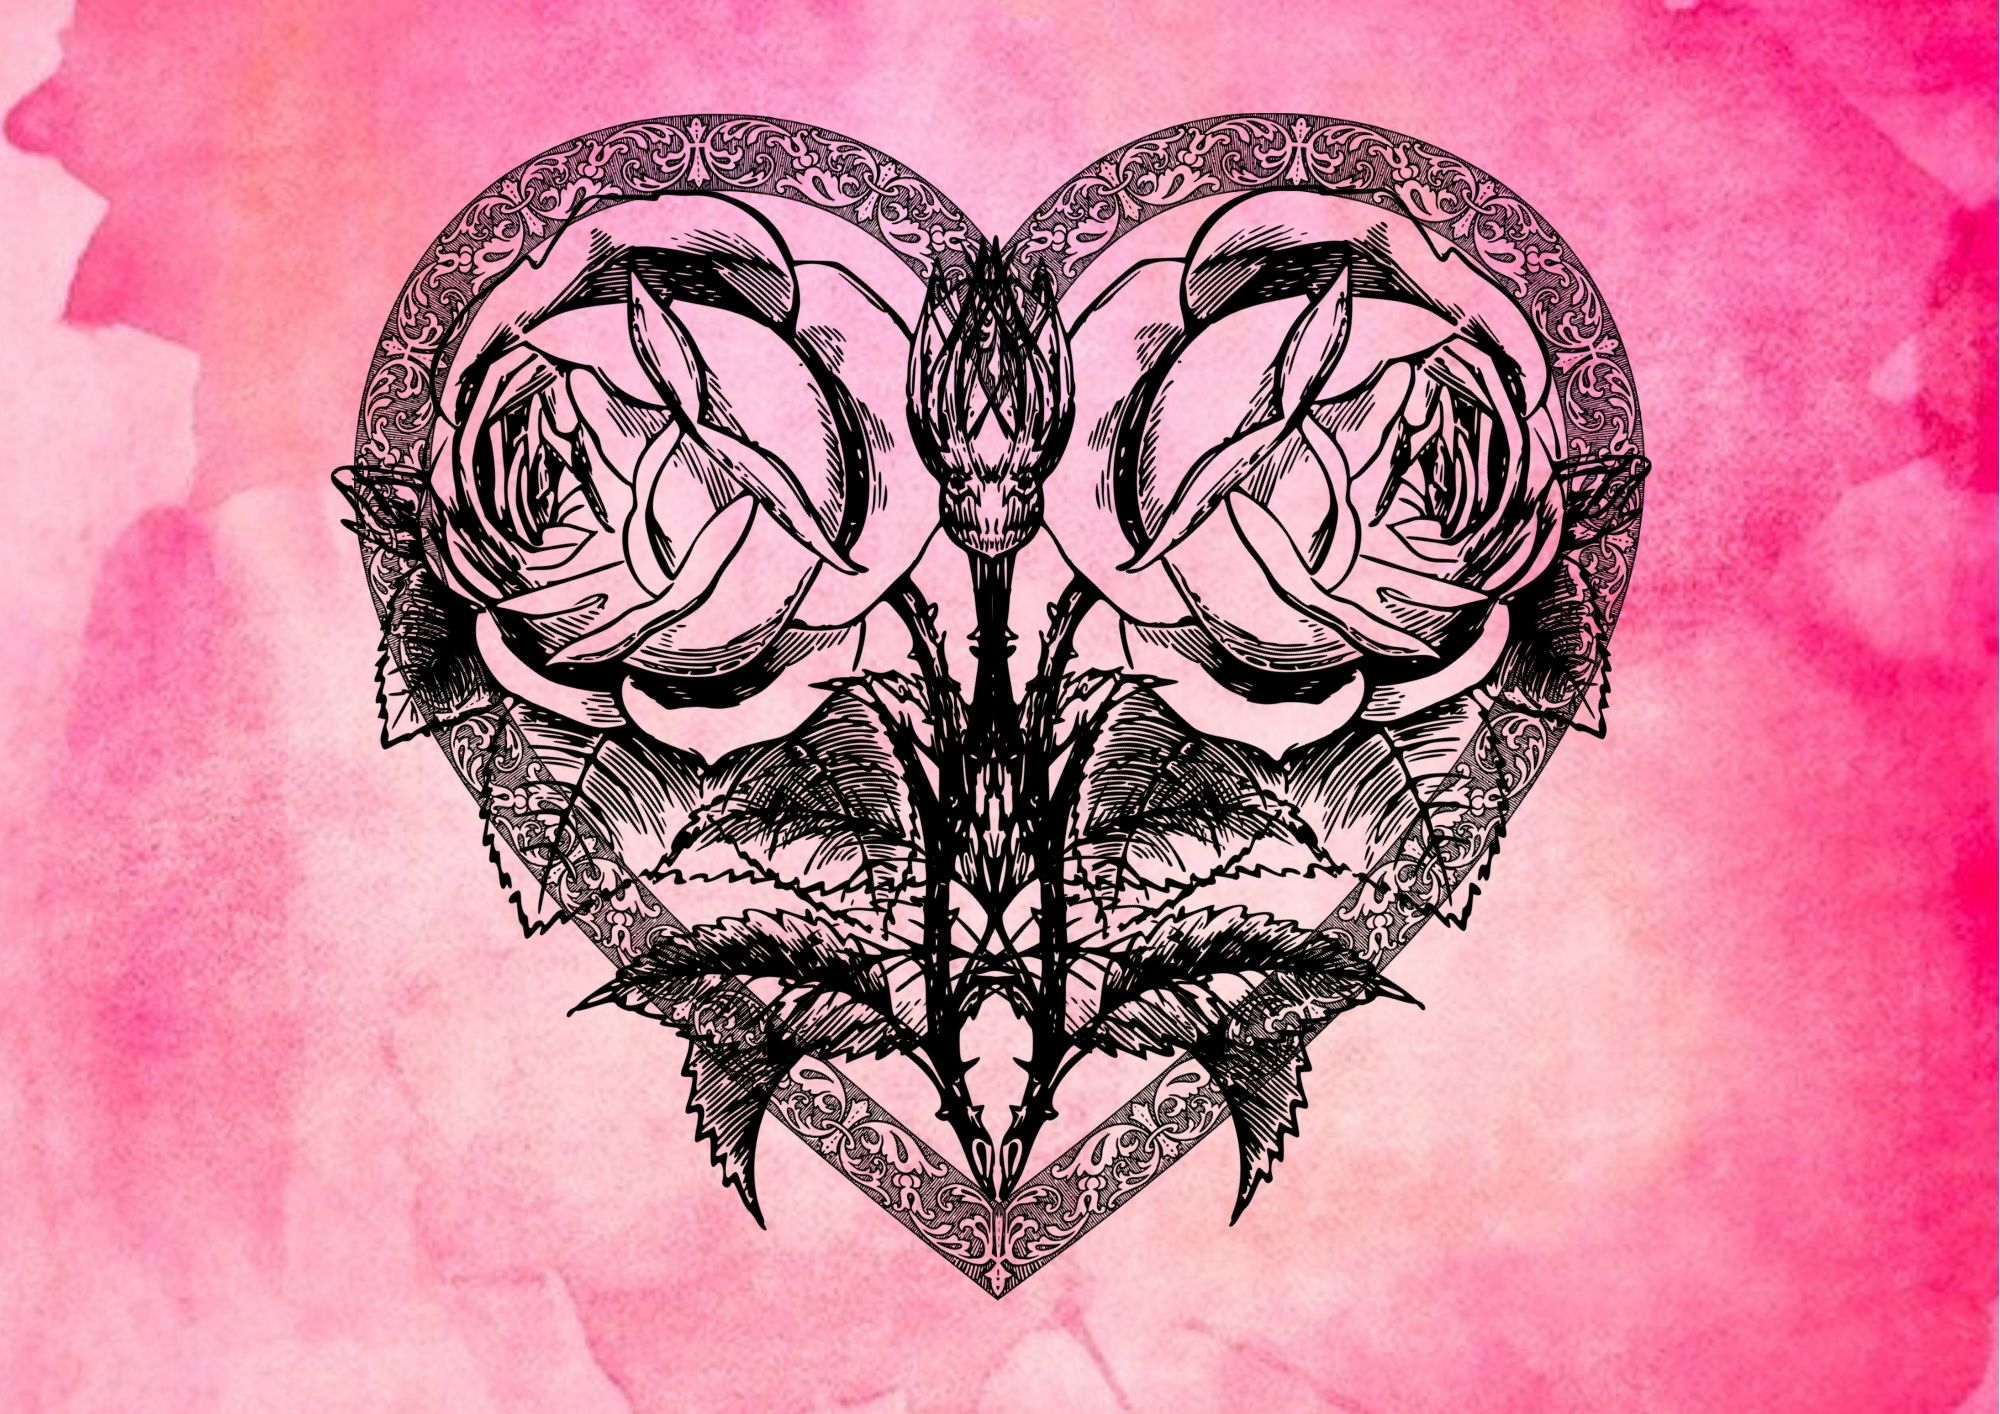 2 roses in a heart frame against a pink watercolour background